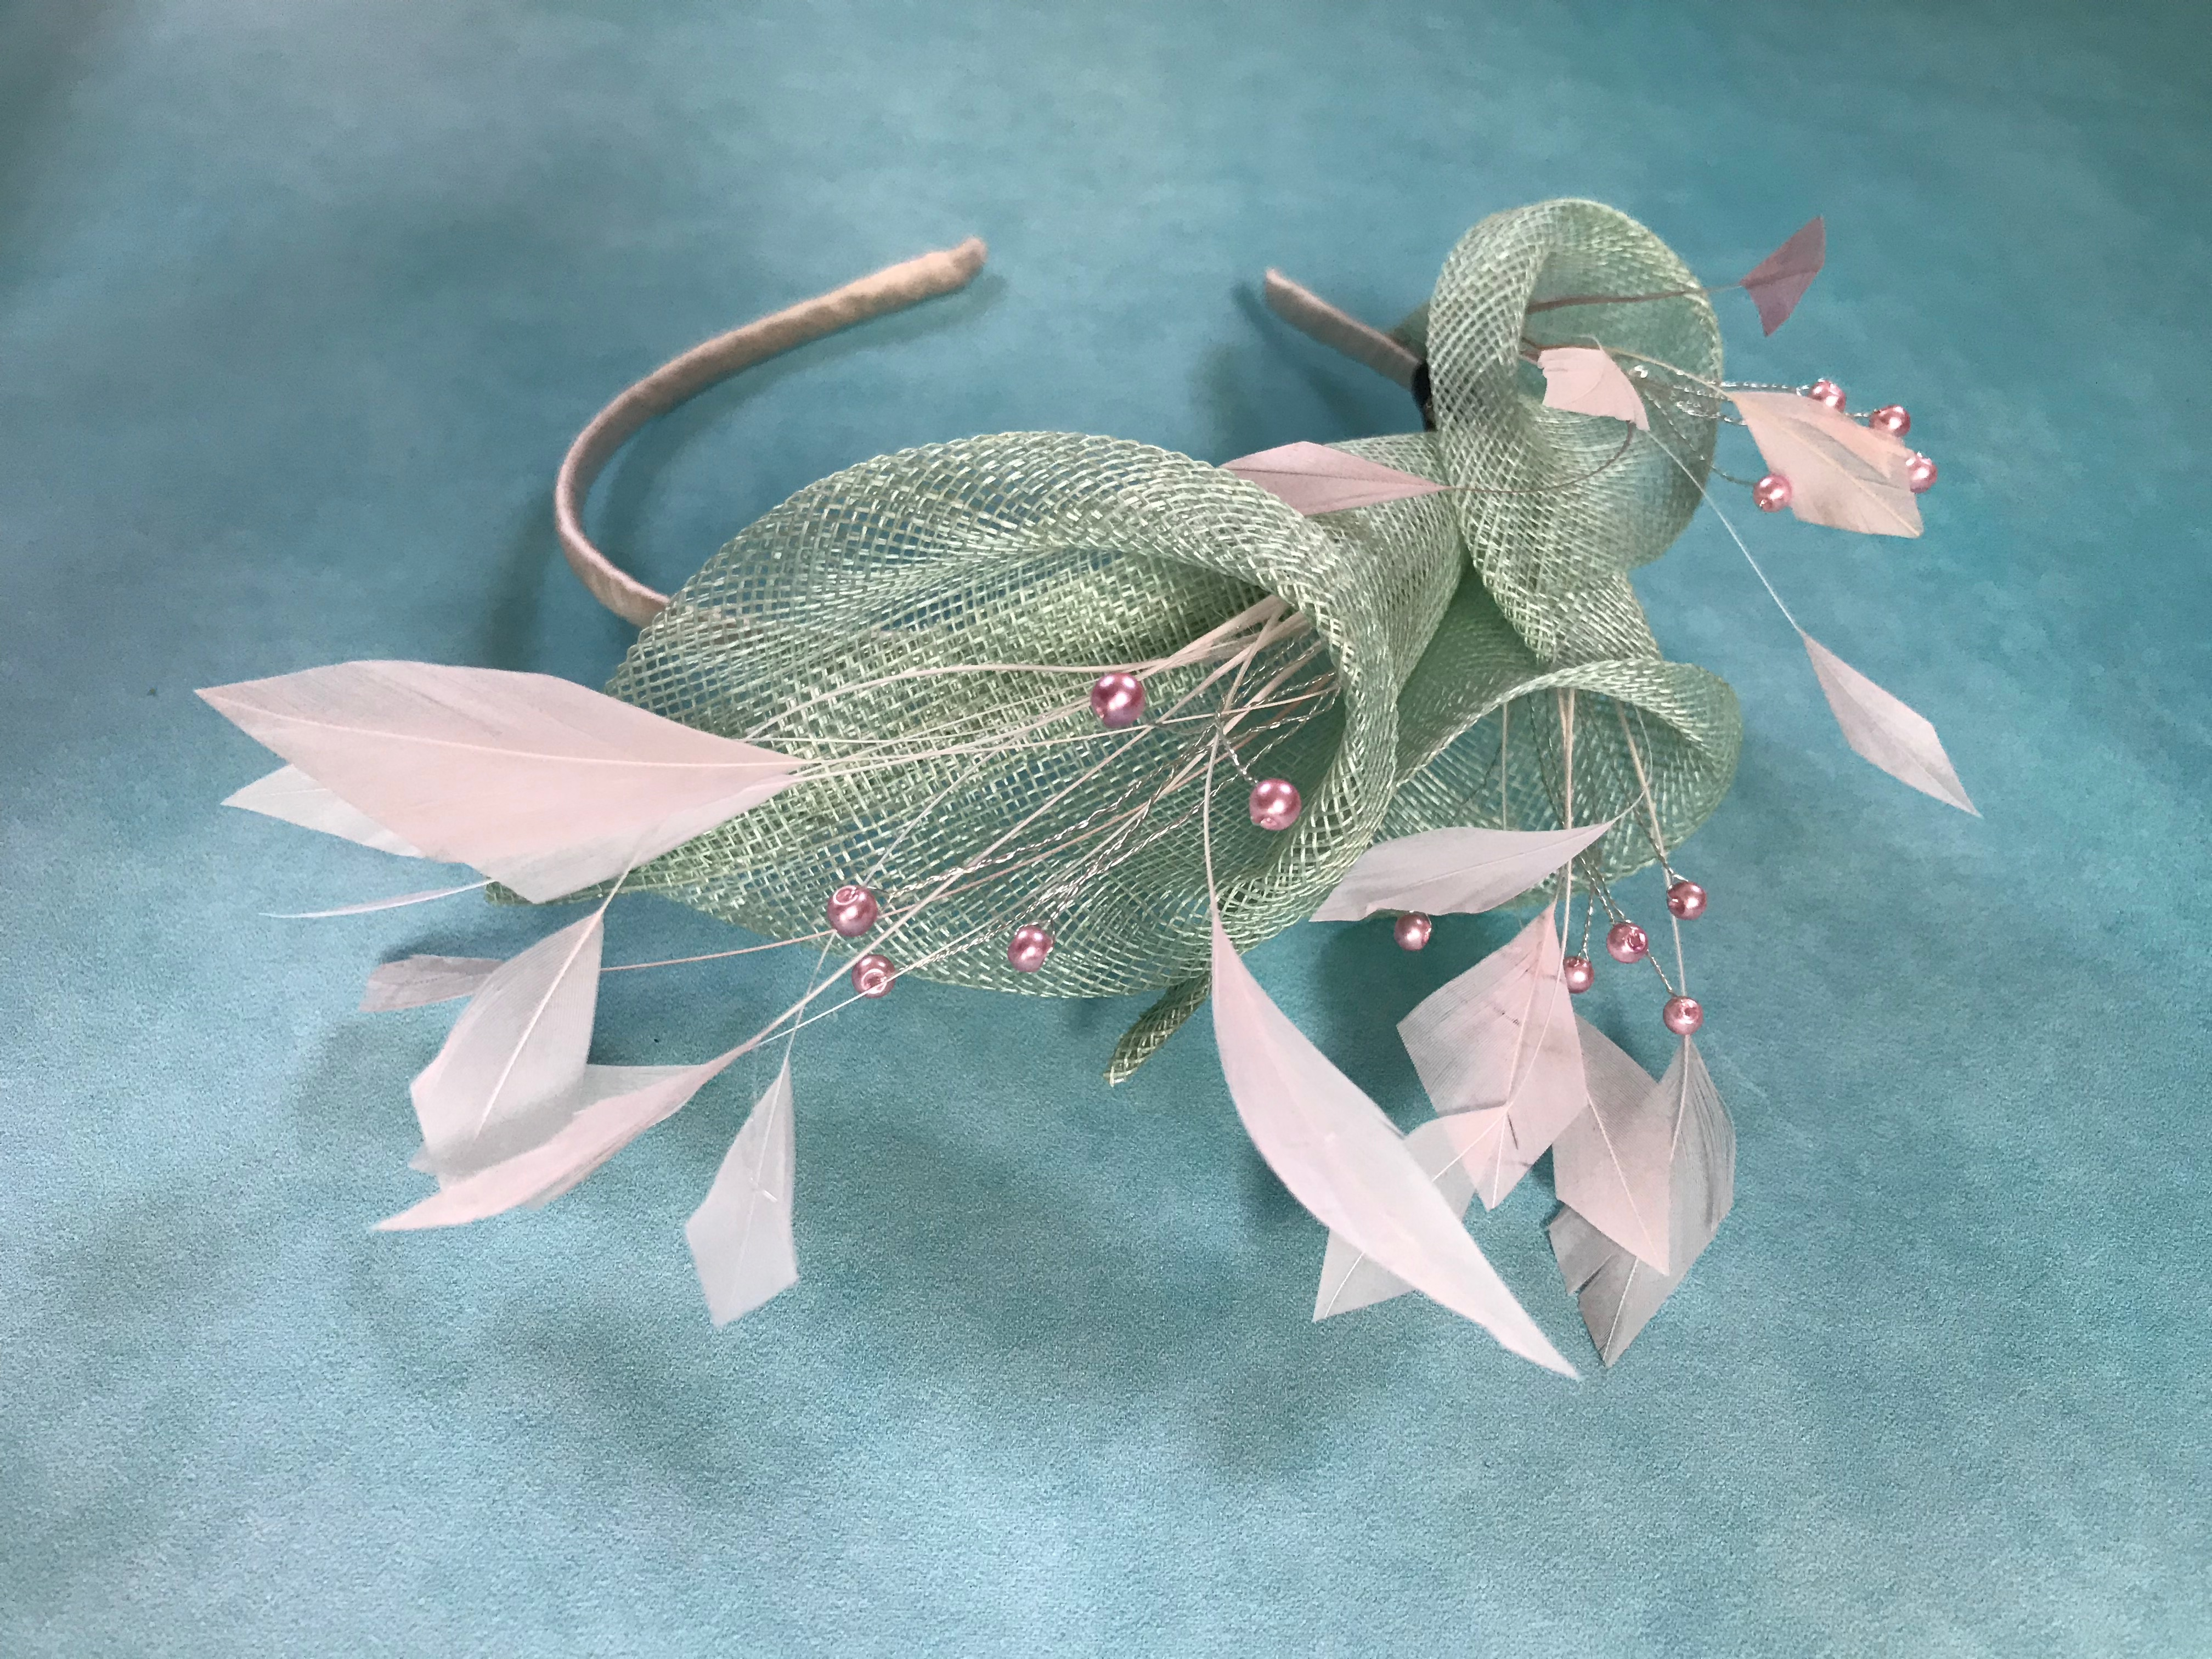 Mint and Pale Pink Fascinator - bespoke order by Isabella Josie Millinery for Mother of the Groom